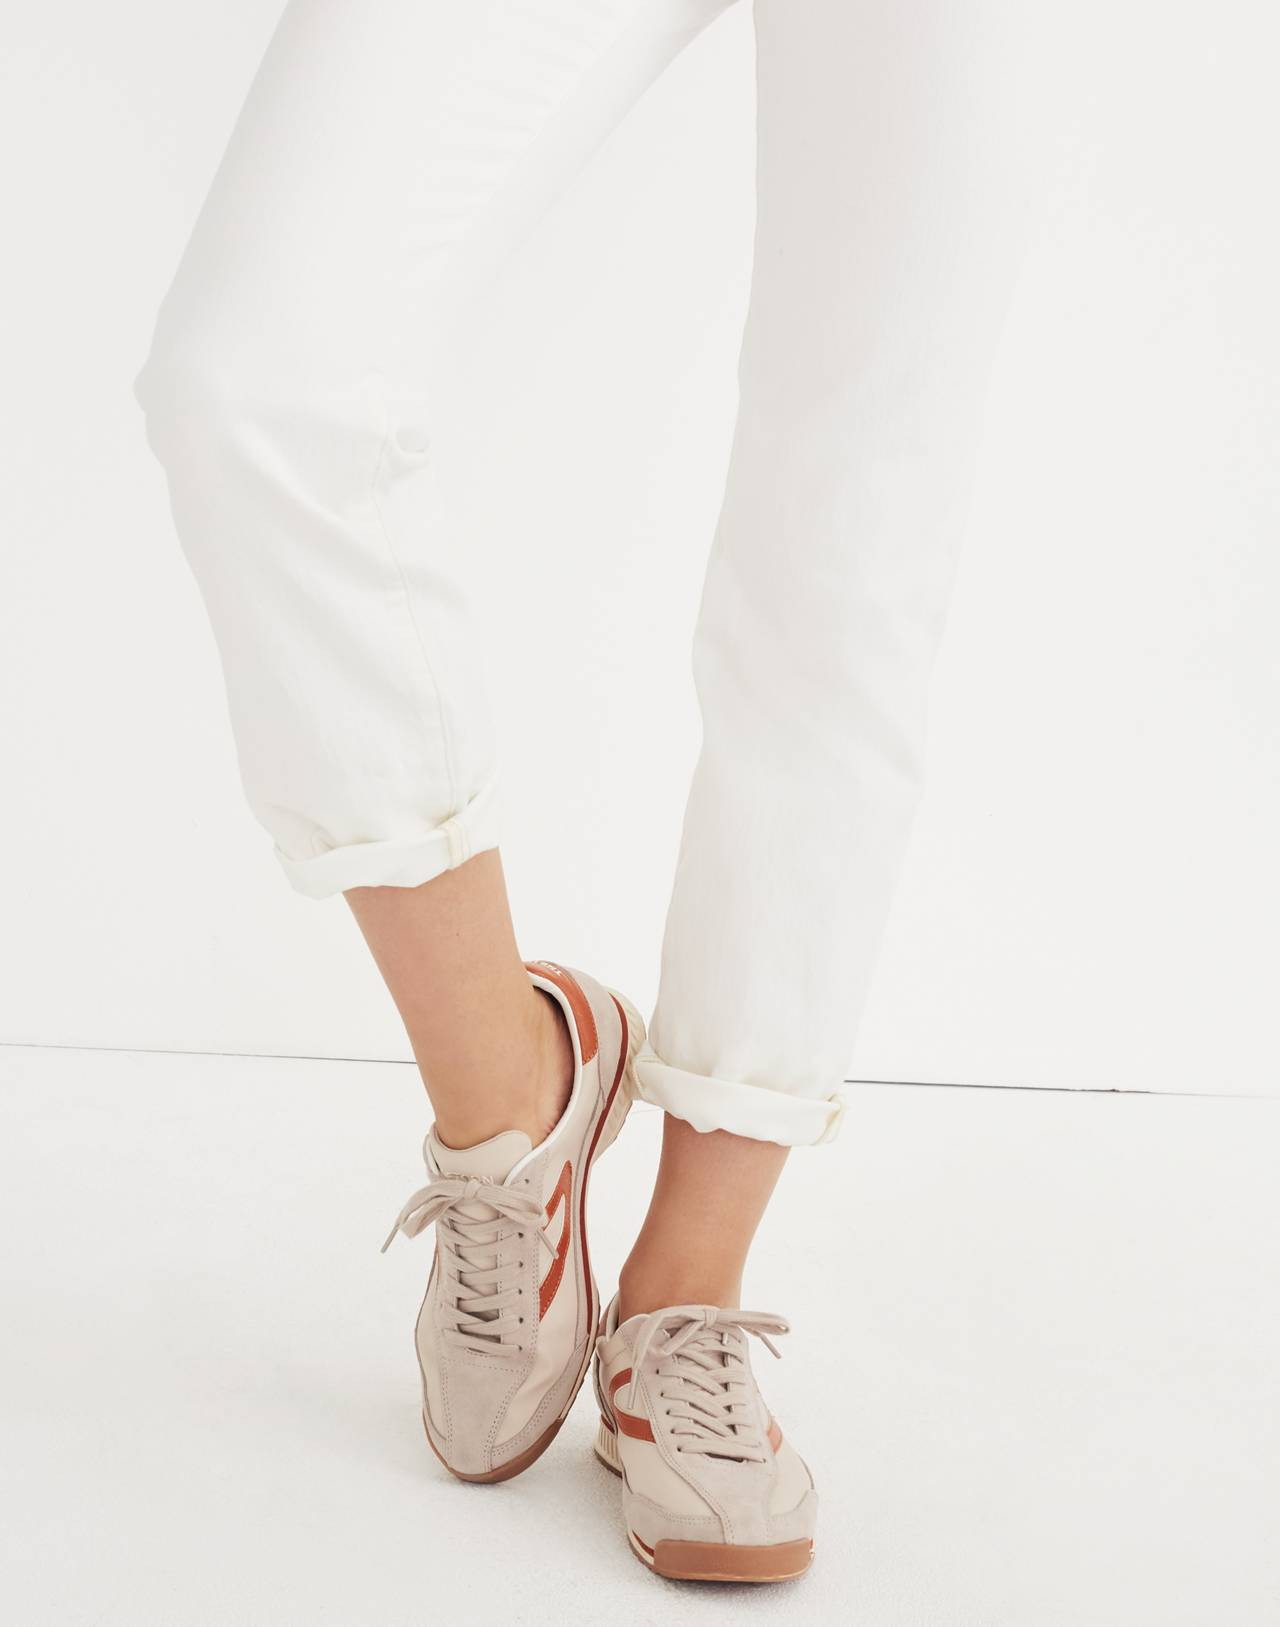 Madewell x Tretorn® Rawlins3 Sneakers in tan neutral image 2